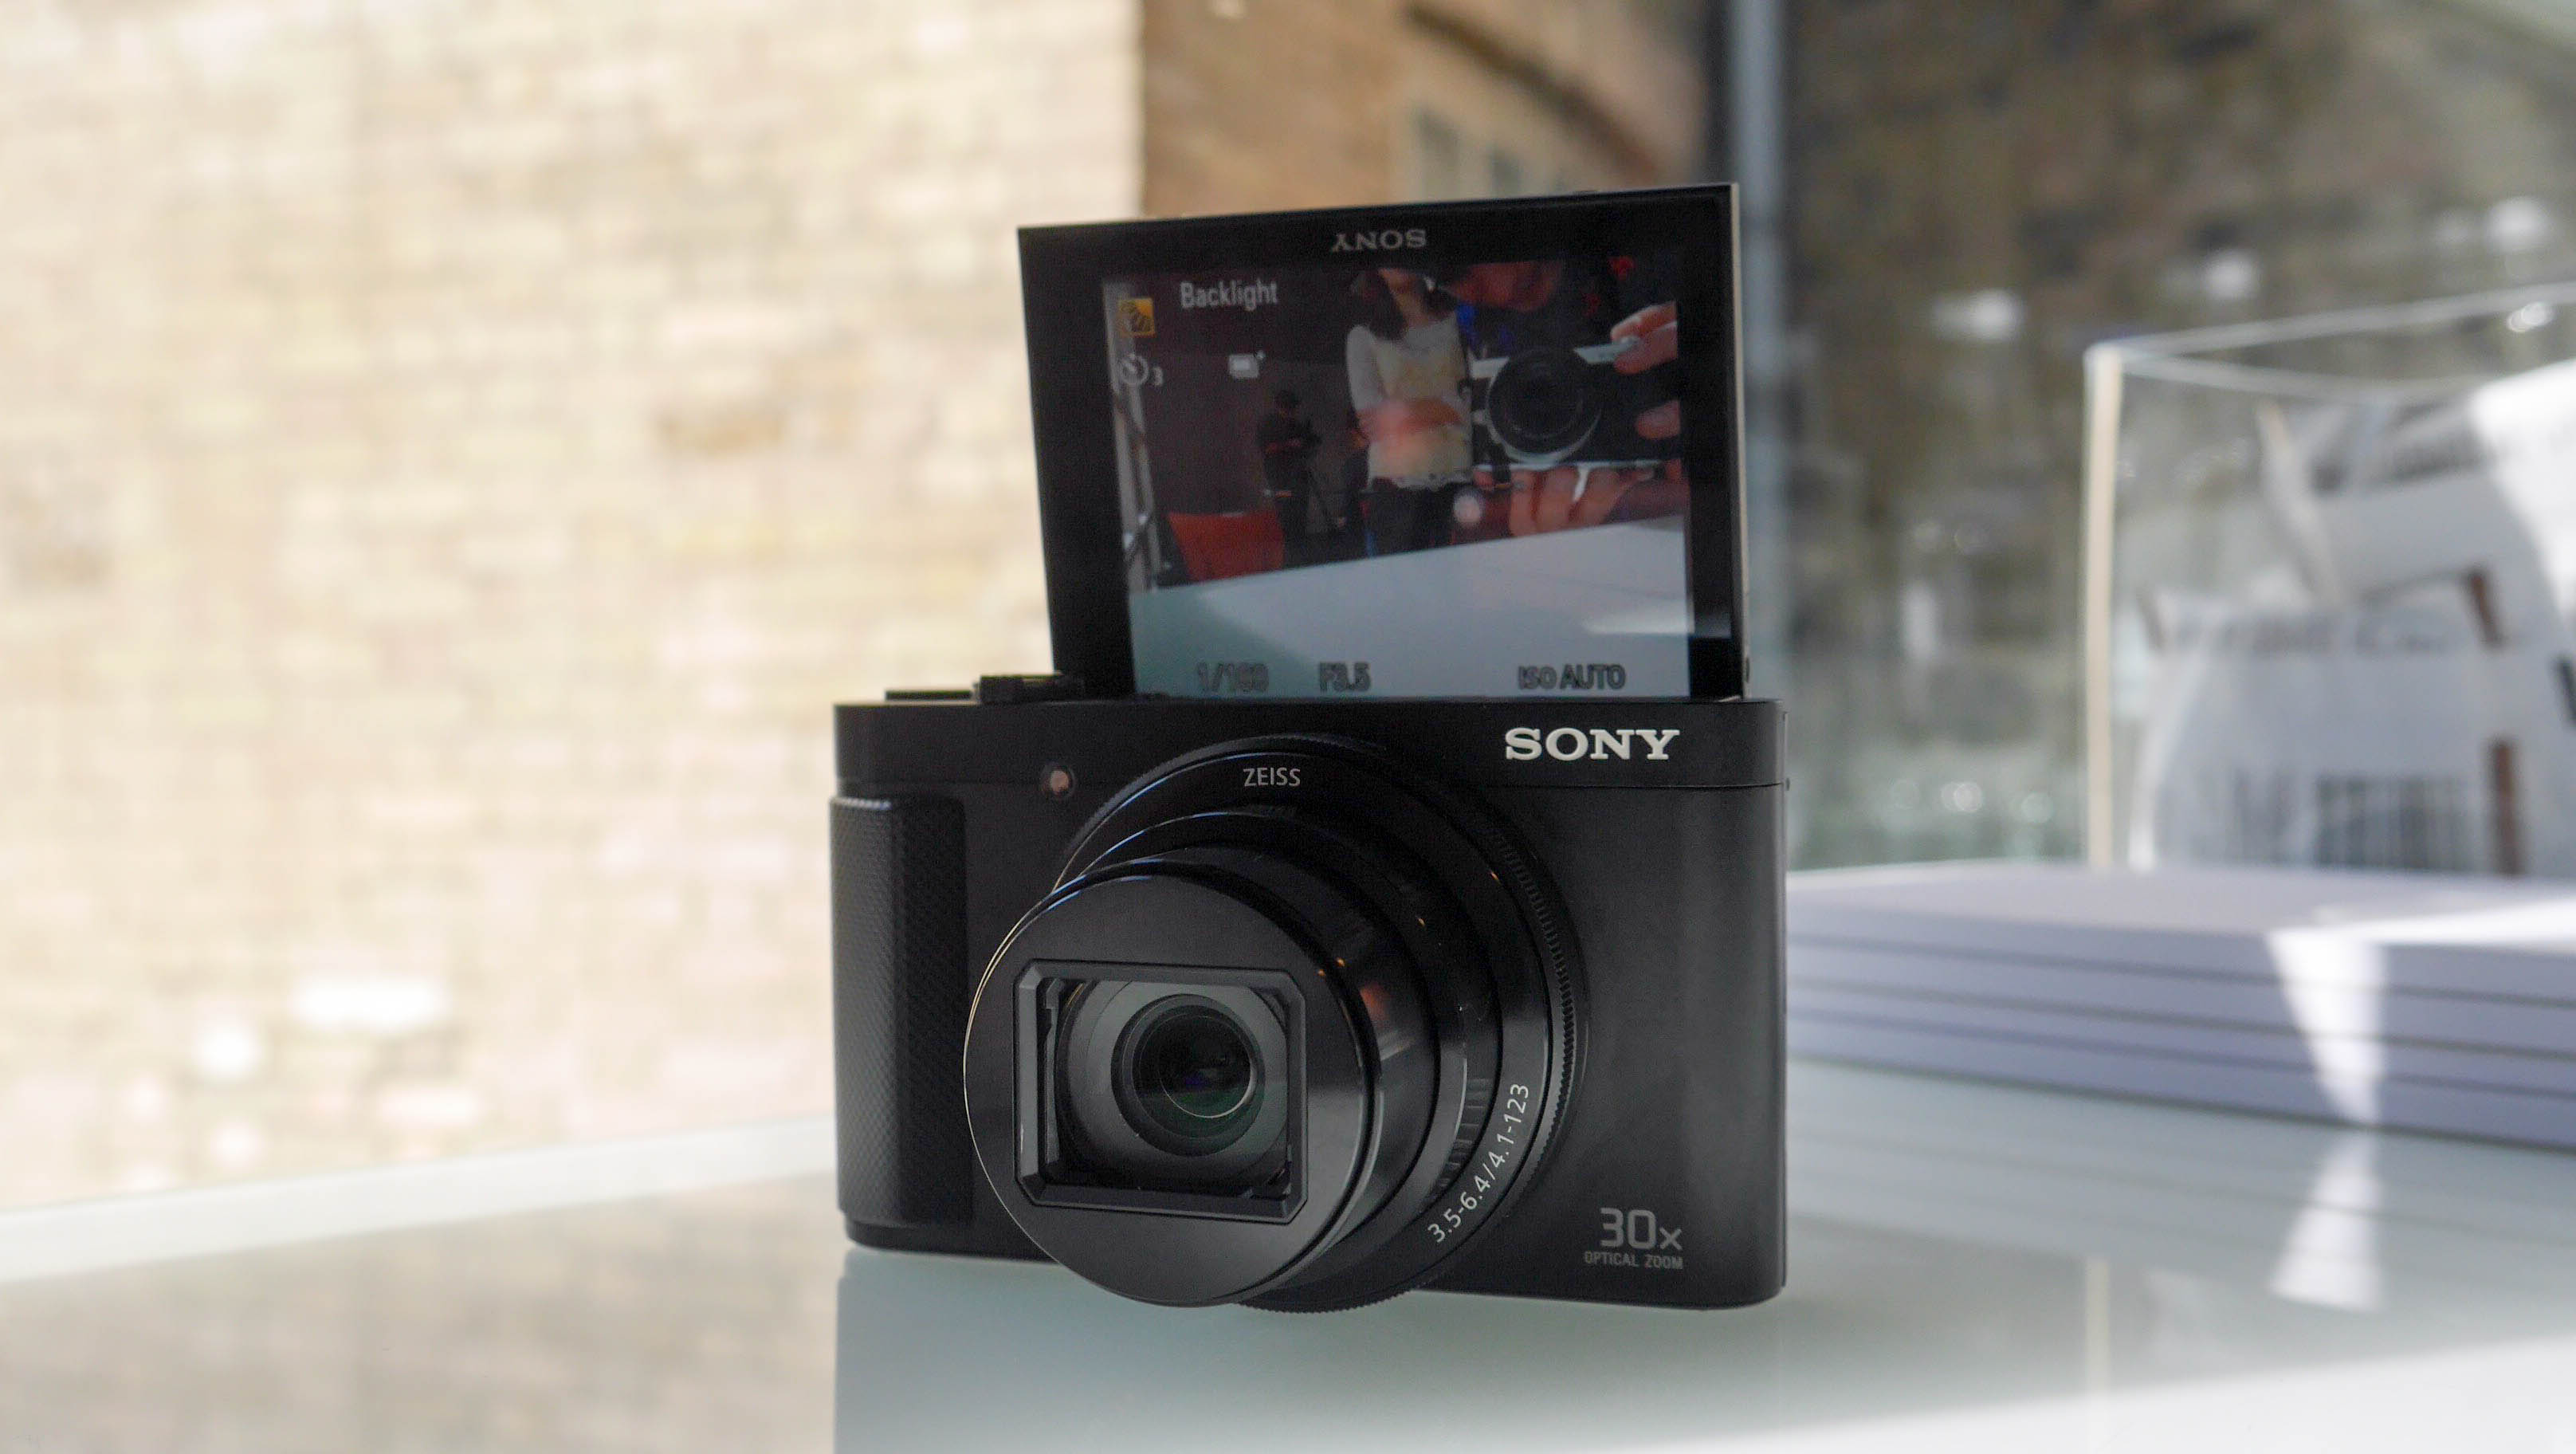 Sony CyberShot HX90 HX90v review hands on pact digital cameras